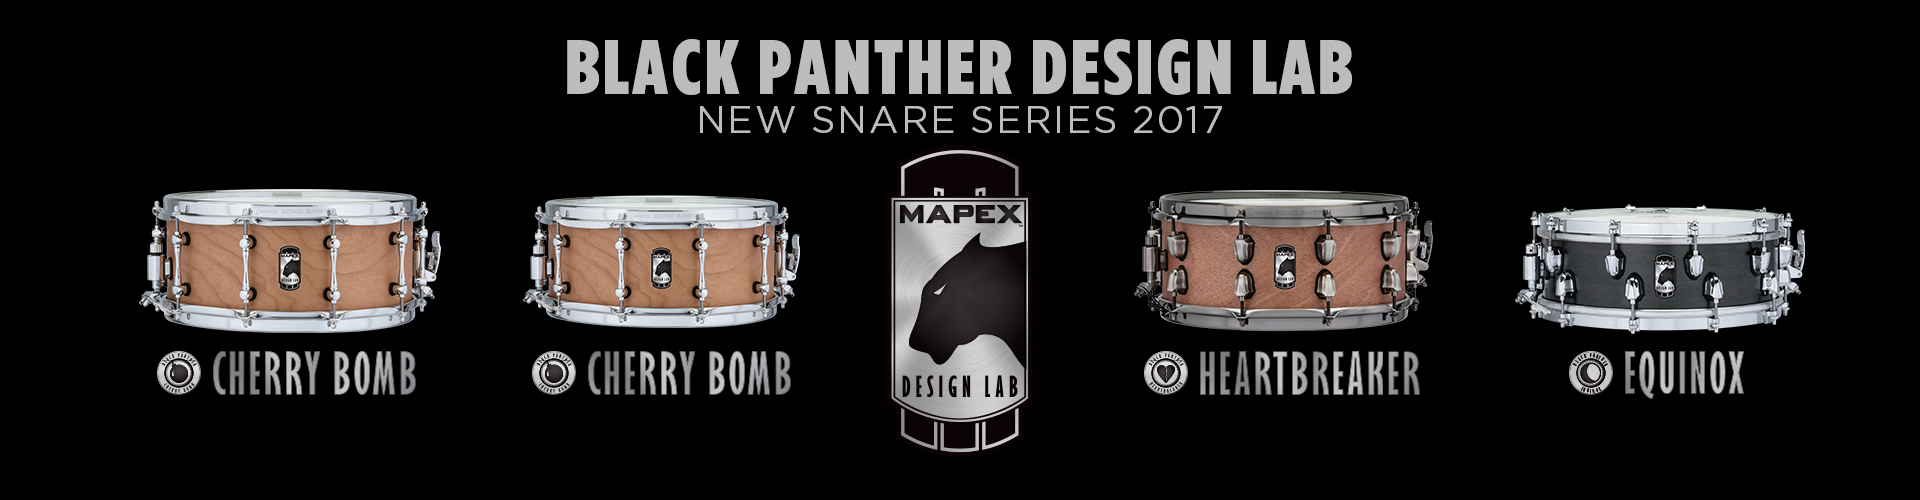 Black Panther Design Lab Snares